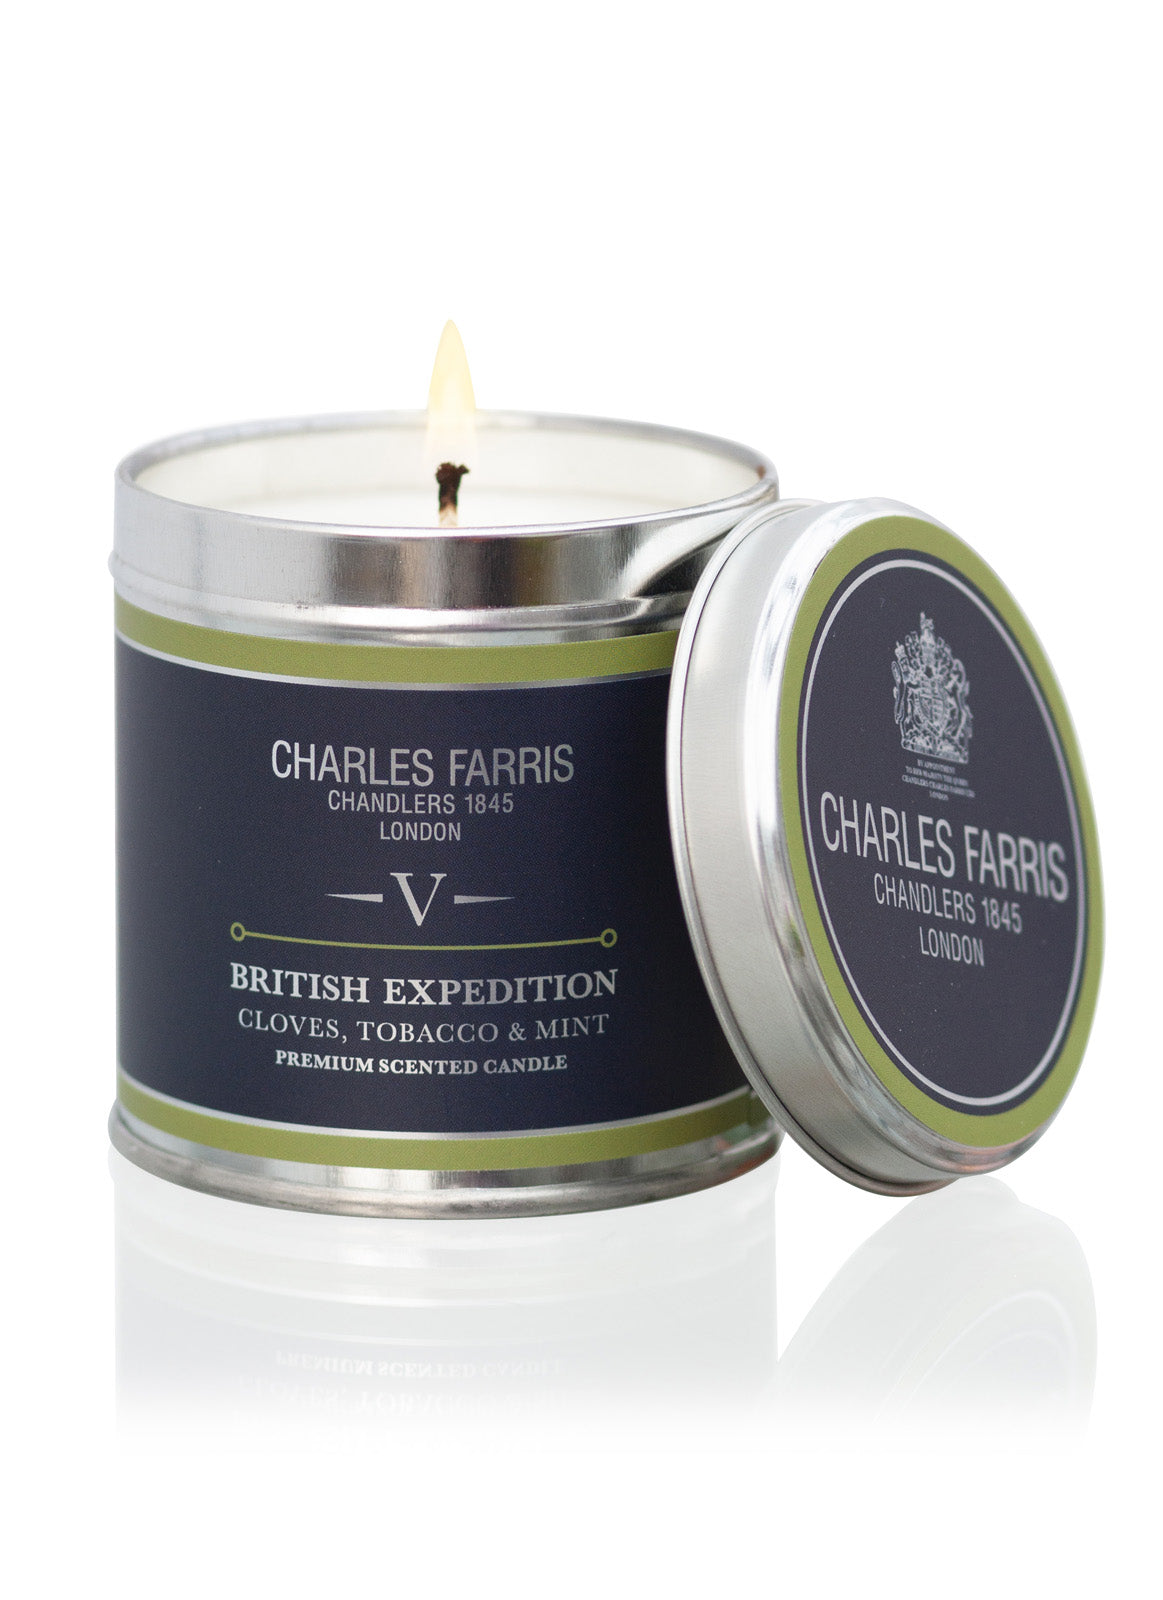 British Expedition Tin Candle | Cloves, Tobacco & Mint Tea